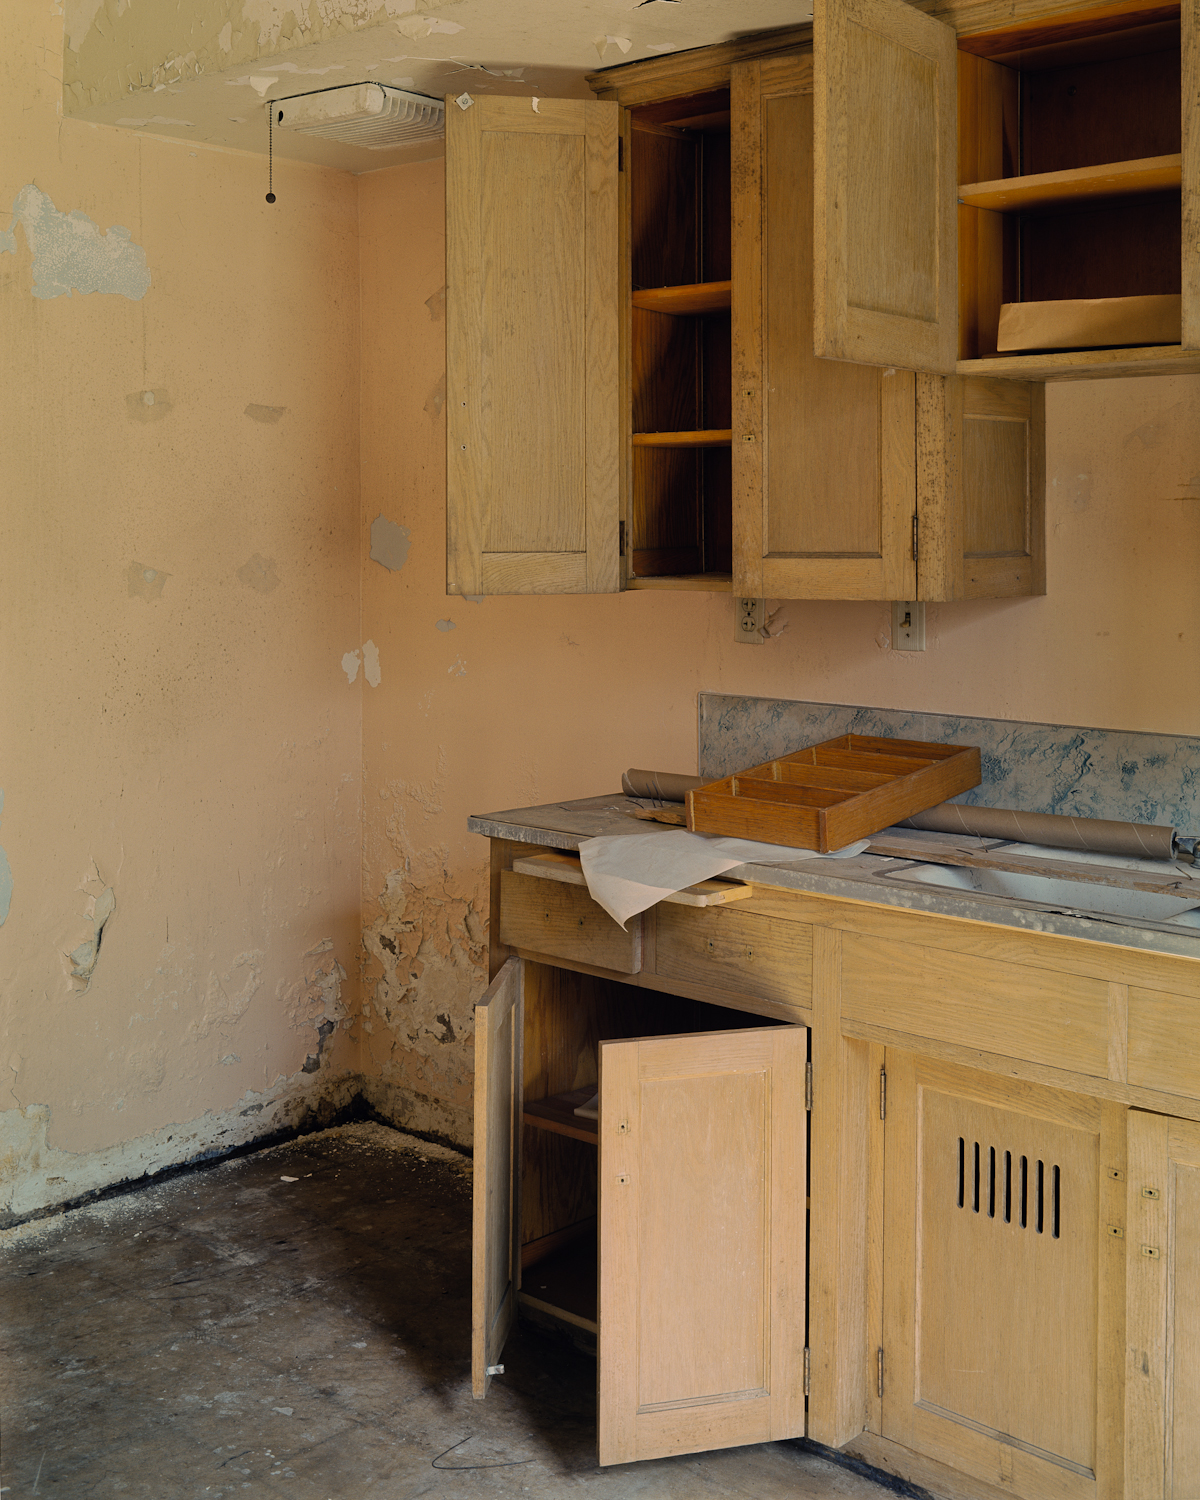 Kitchen of basement apartment, Dormitory Building.